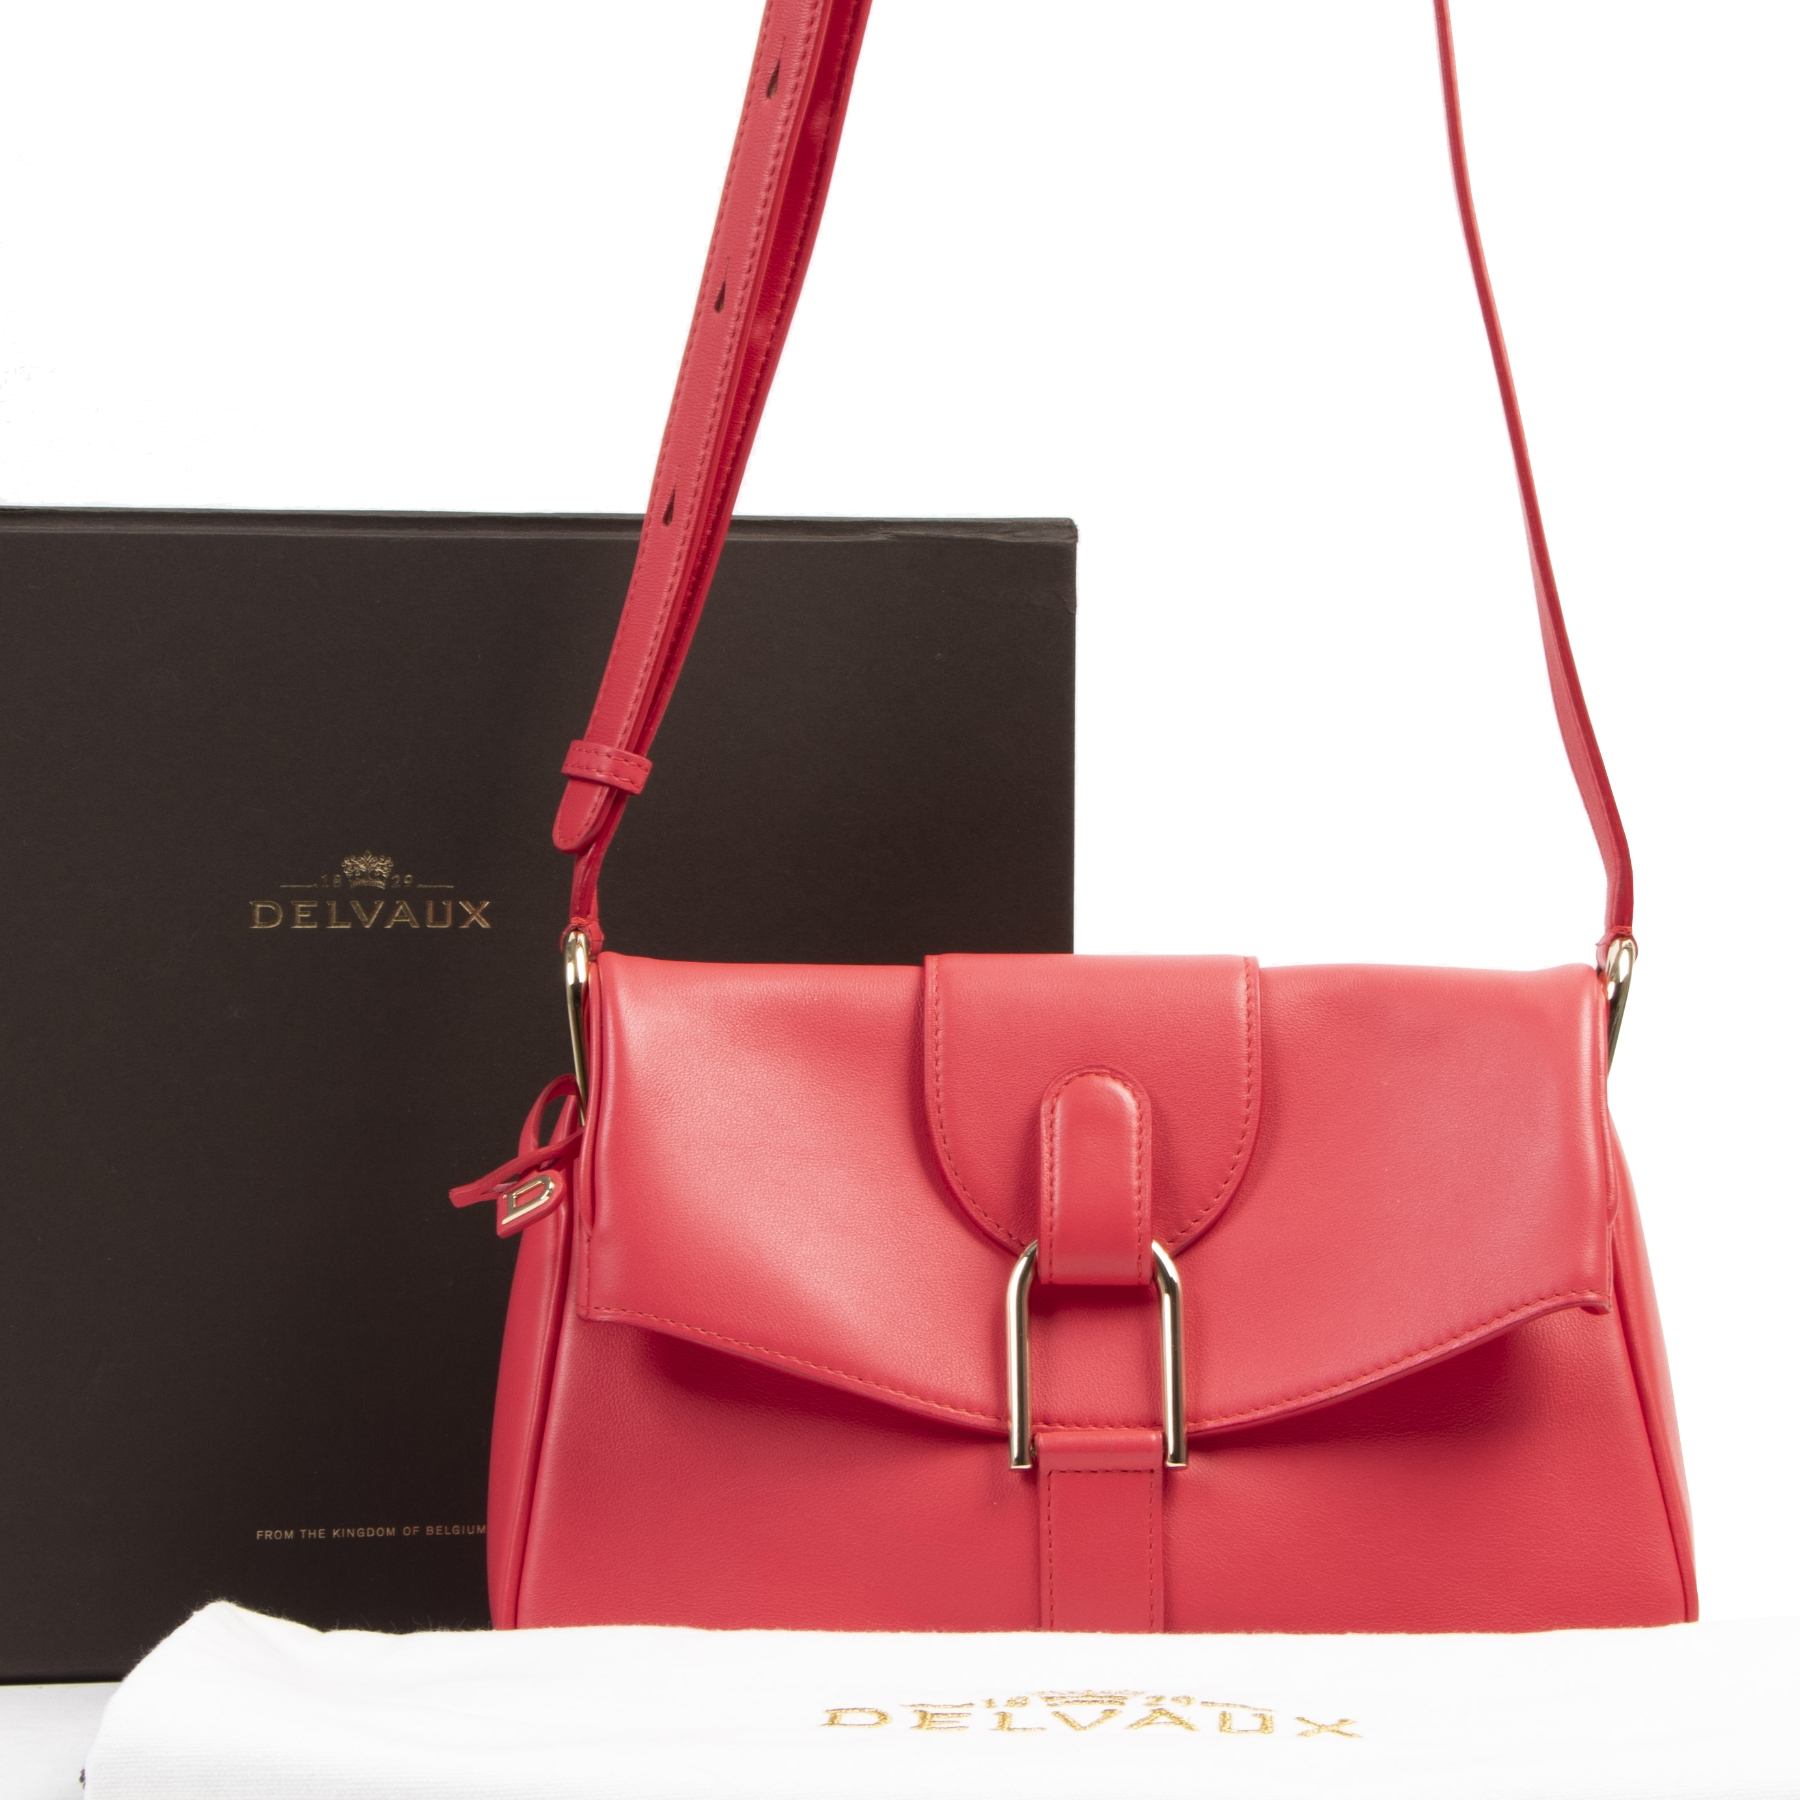 Authentieke tweedehands vintage Delvaux Red Givry Crossbody Bag koop online webshop LabelLOV